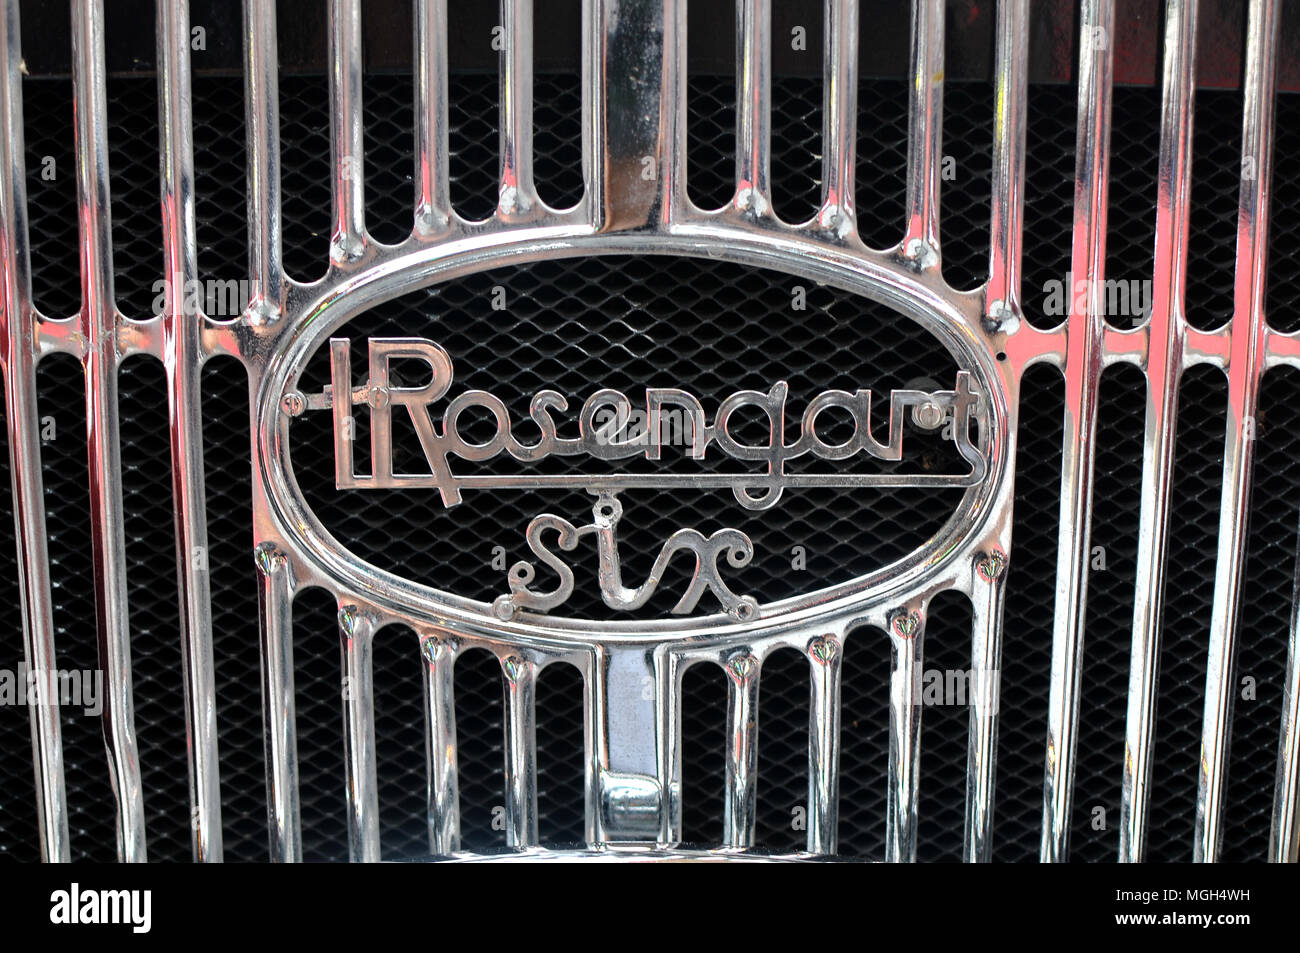 Rosengart car collection - Stock Image